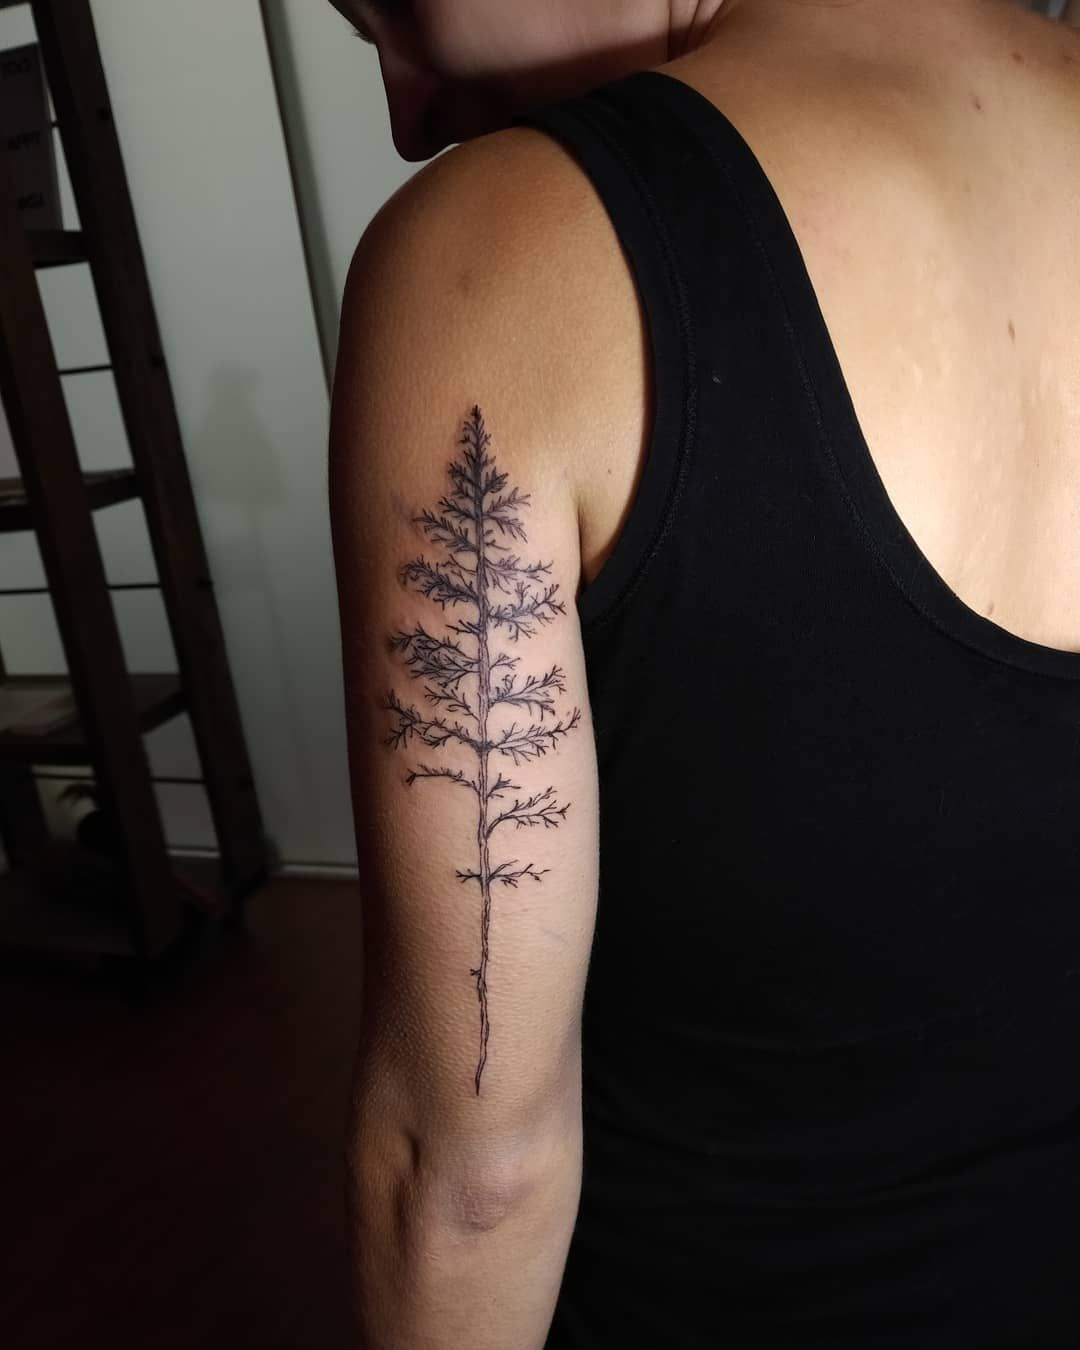 Simple And Easy Pine Tree Tattoo Designs Meanings 2019 Page 9 Of 60 Tracesofmybody Com Half Sleeve Tattoos Designs Tattoos For Women Half Sleeve Tattoo